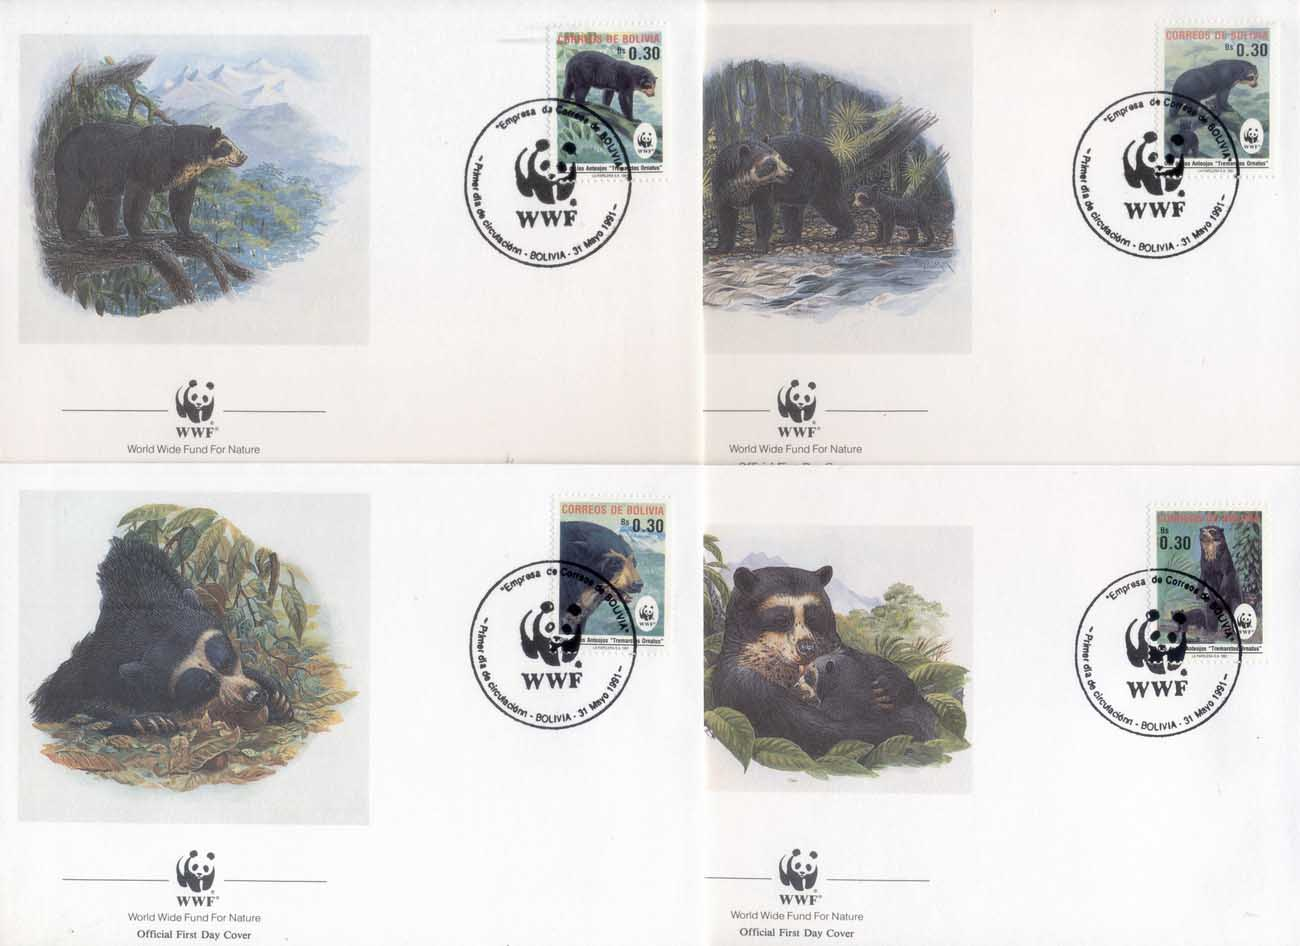 Bolivia 1991 WWF Spectacled Bear FDC